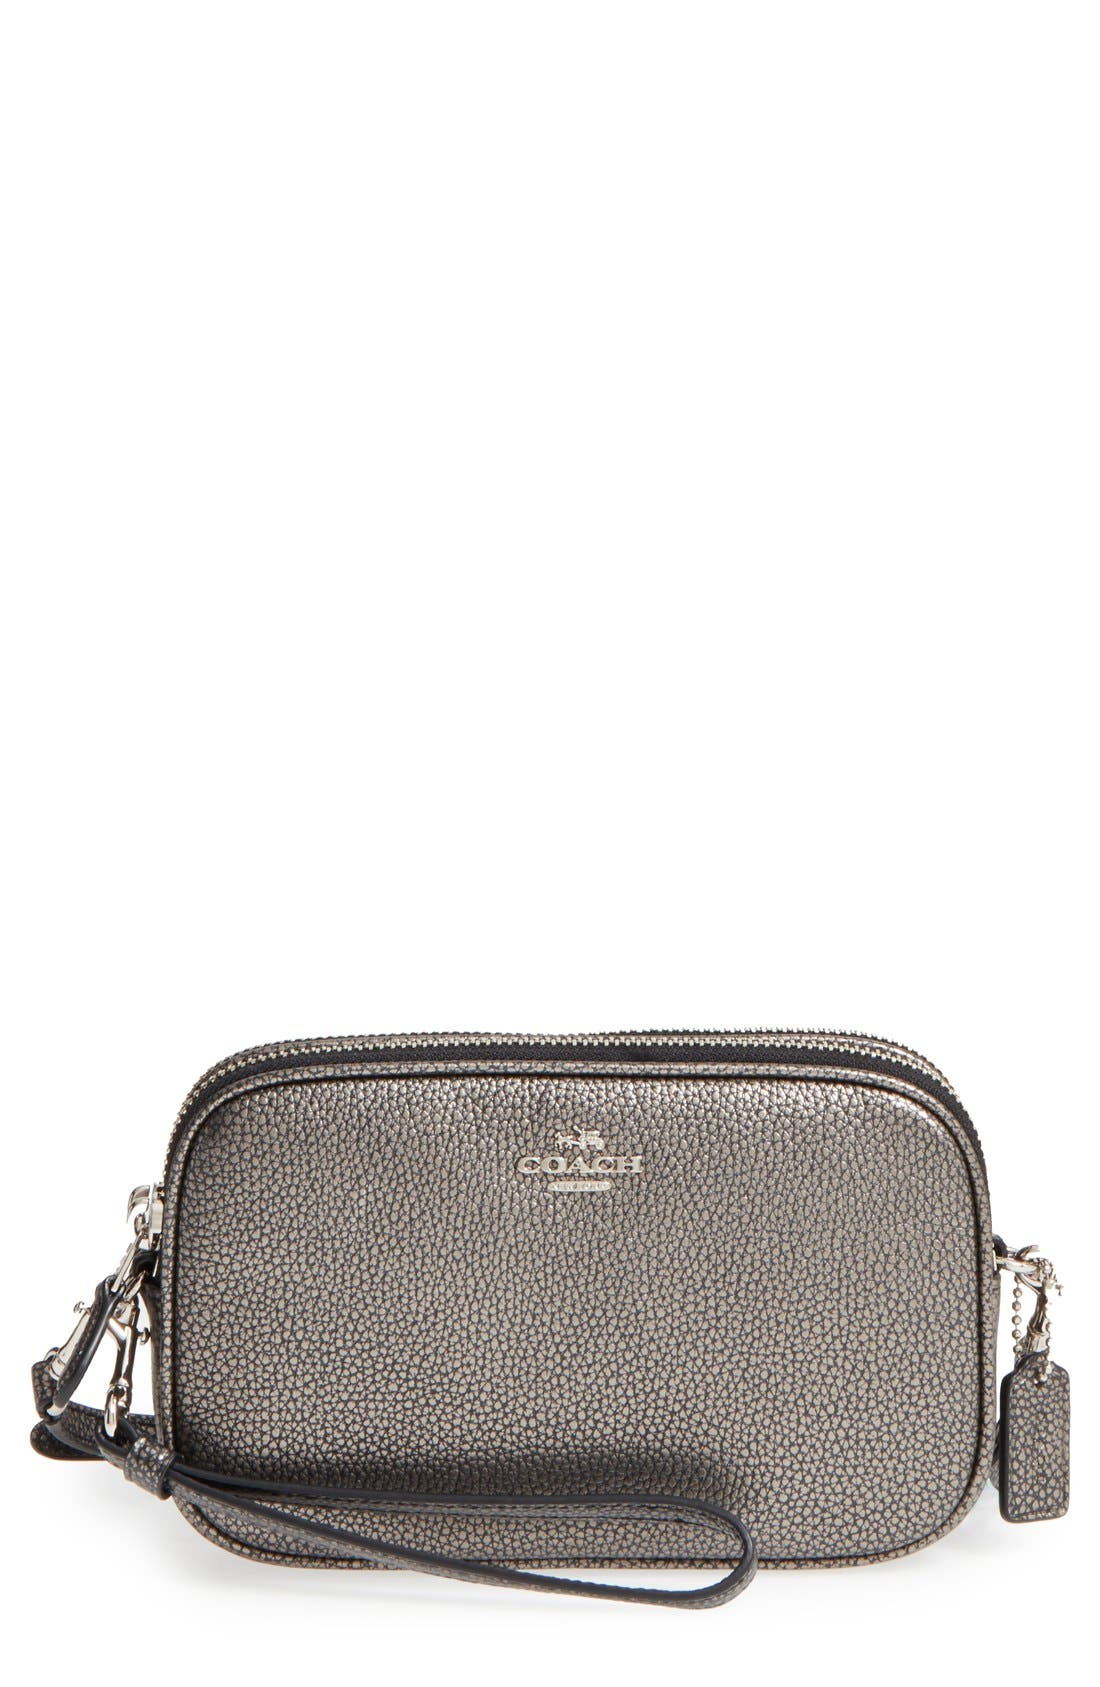 Main Image - COACH Convertible Leather Crossbody Bag